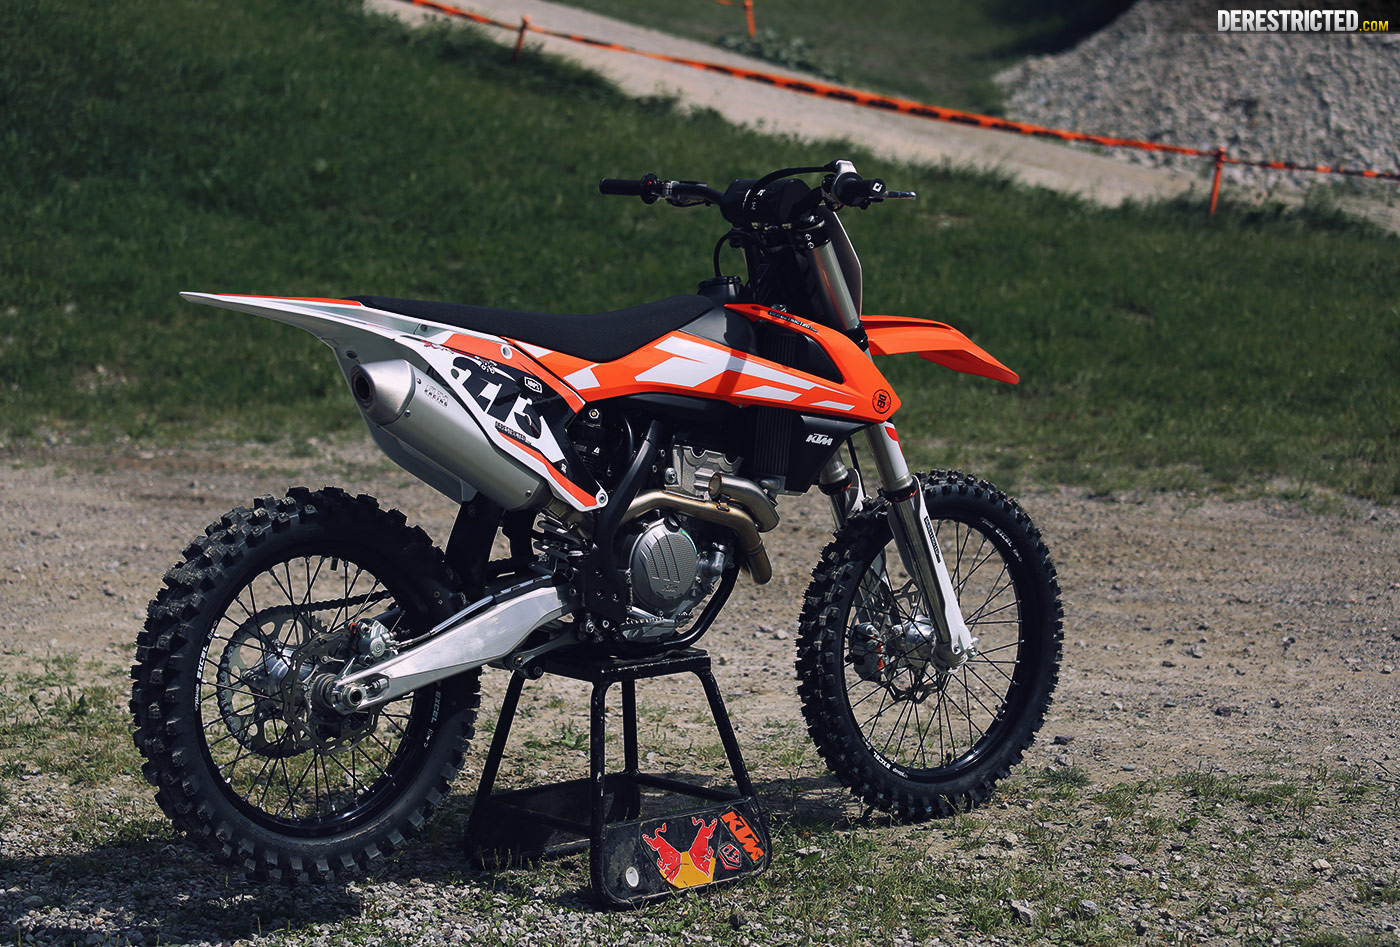 2016-ktm-350sxf-review-firstlook-10